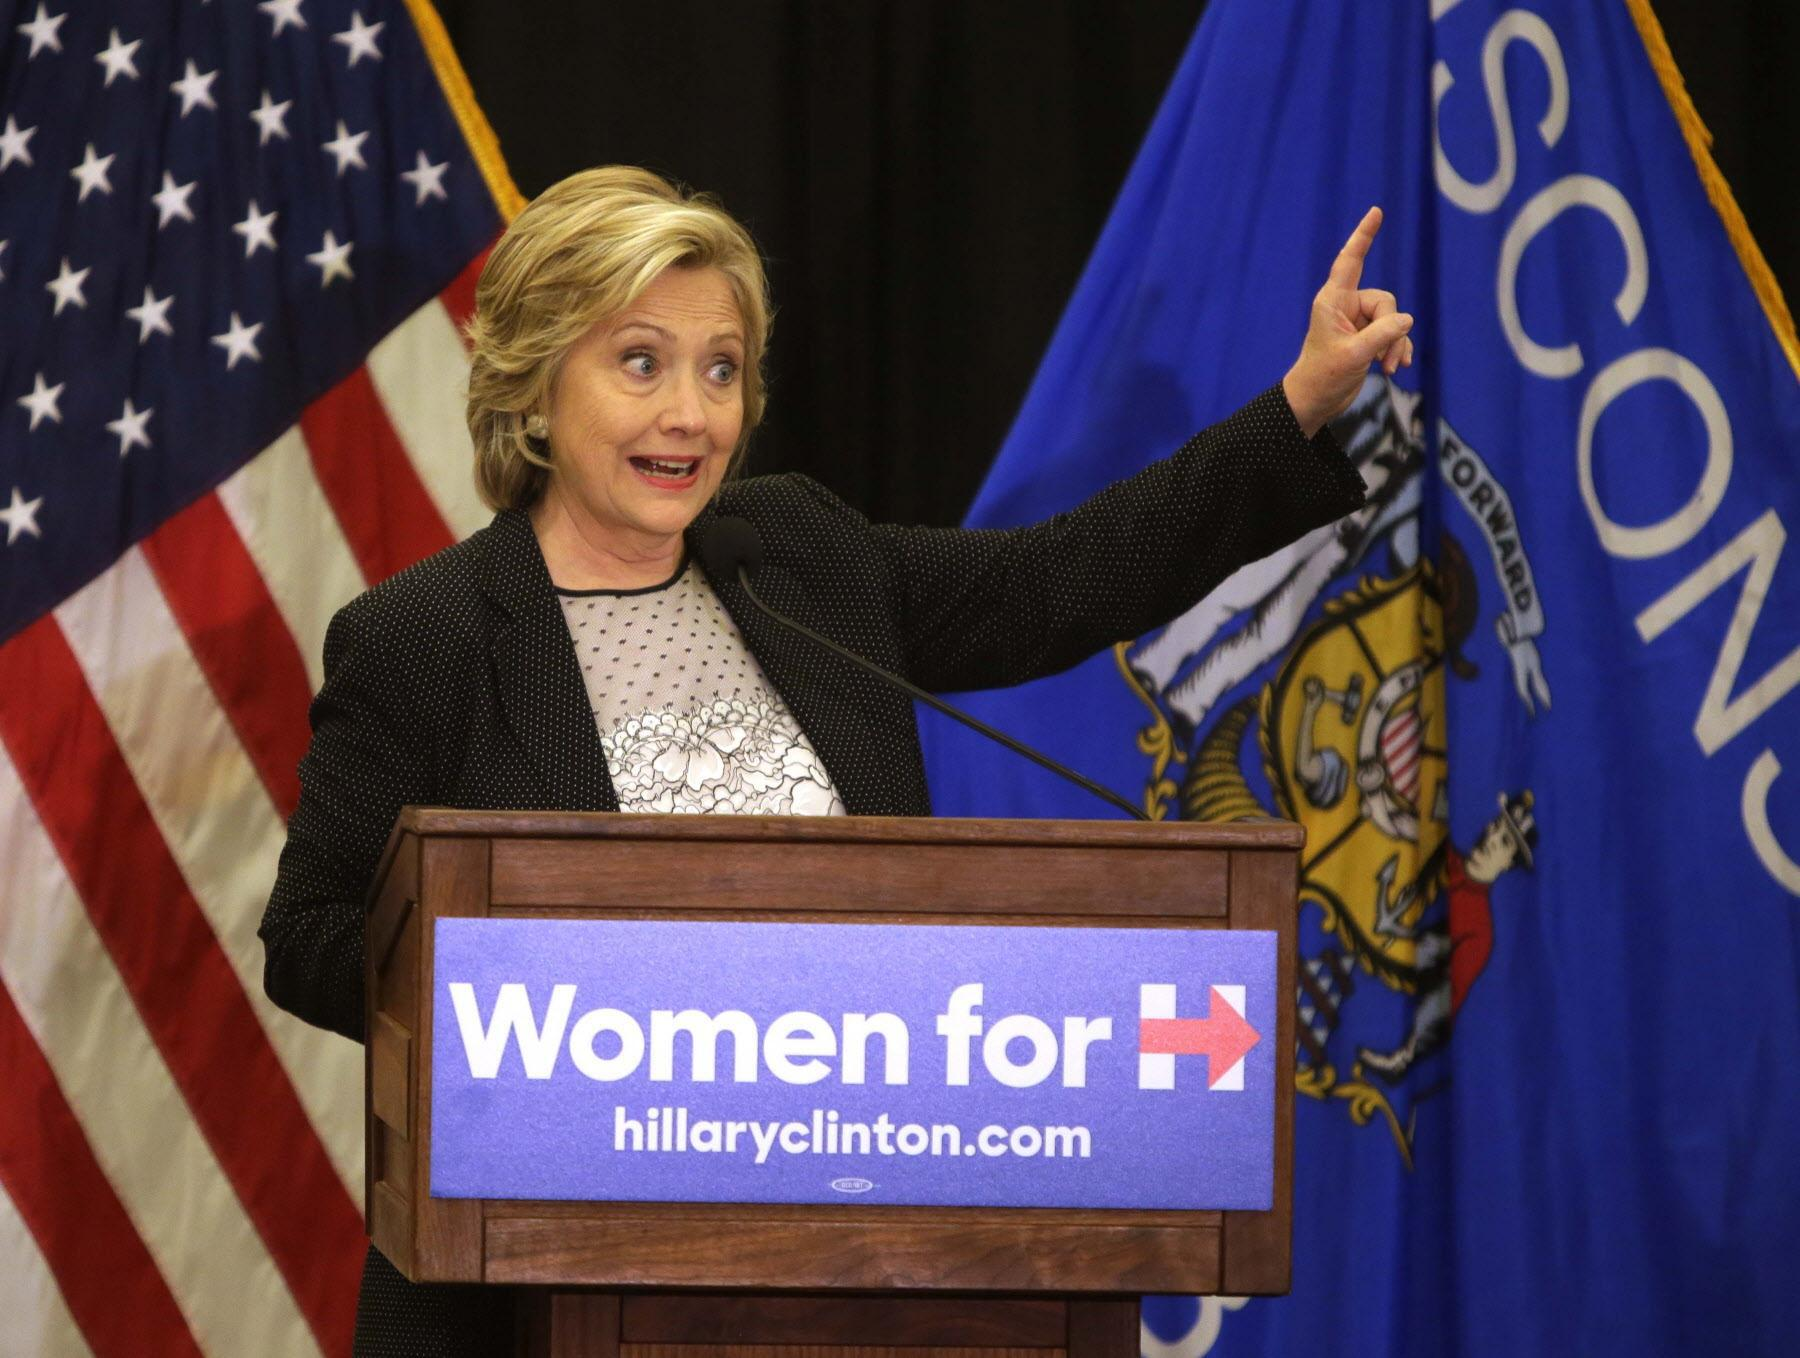 Hillary Clinton calls Wisconsin's photo ID law voter suppression. The 2016 presidential contest, in which Clinton lost to Donald Trump, was the first time the law was in effect for a presidential election in Wisconsin. (Milwaukee Journal Sentinel)